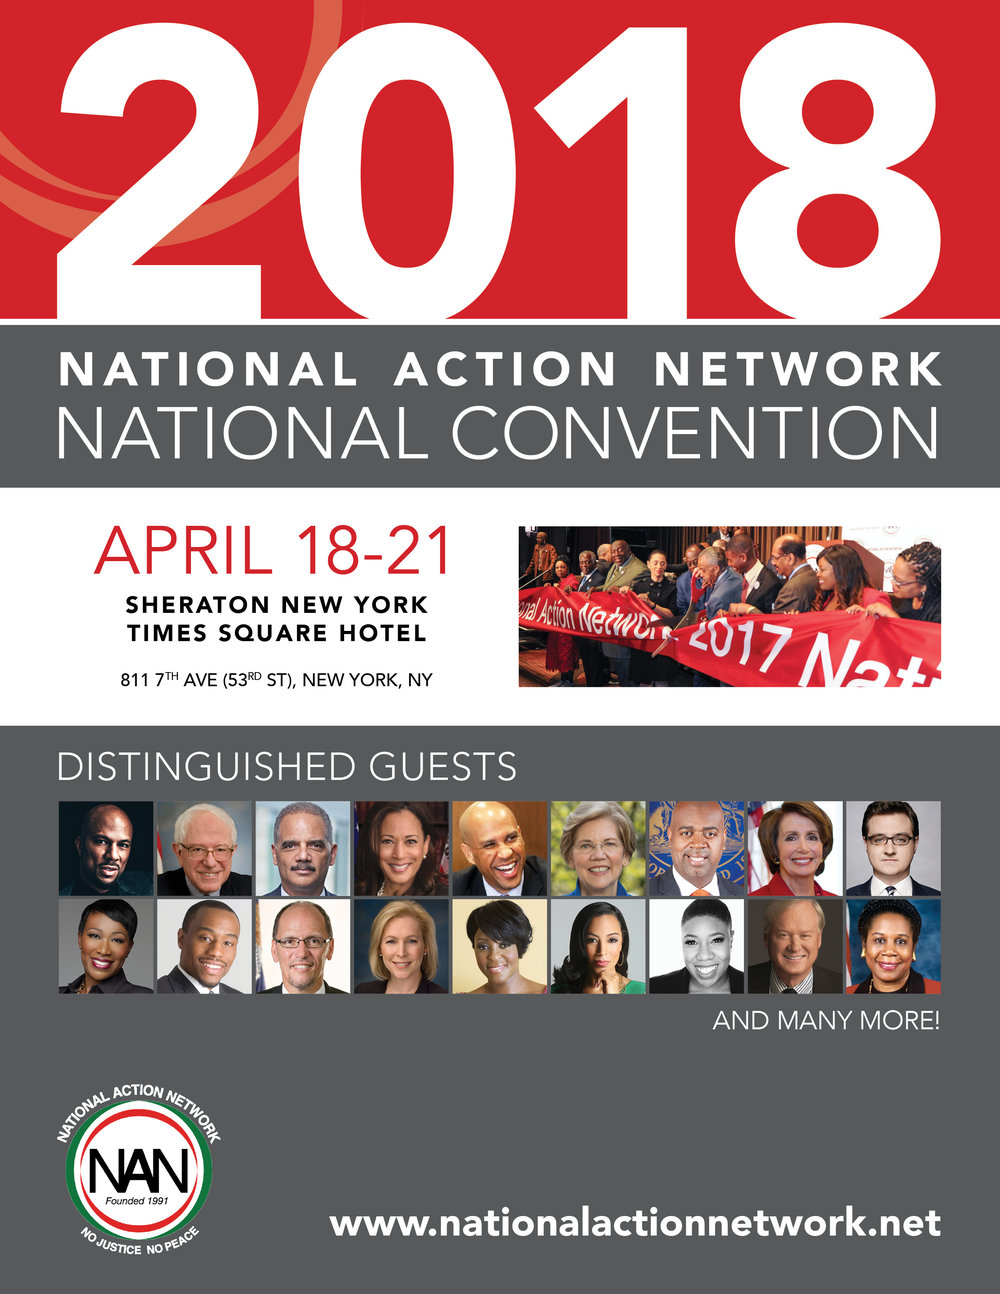 National Action Network 2018 Convention